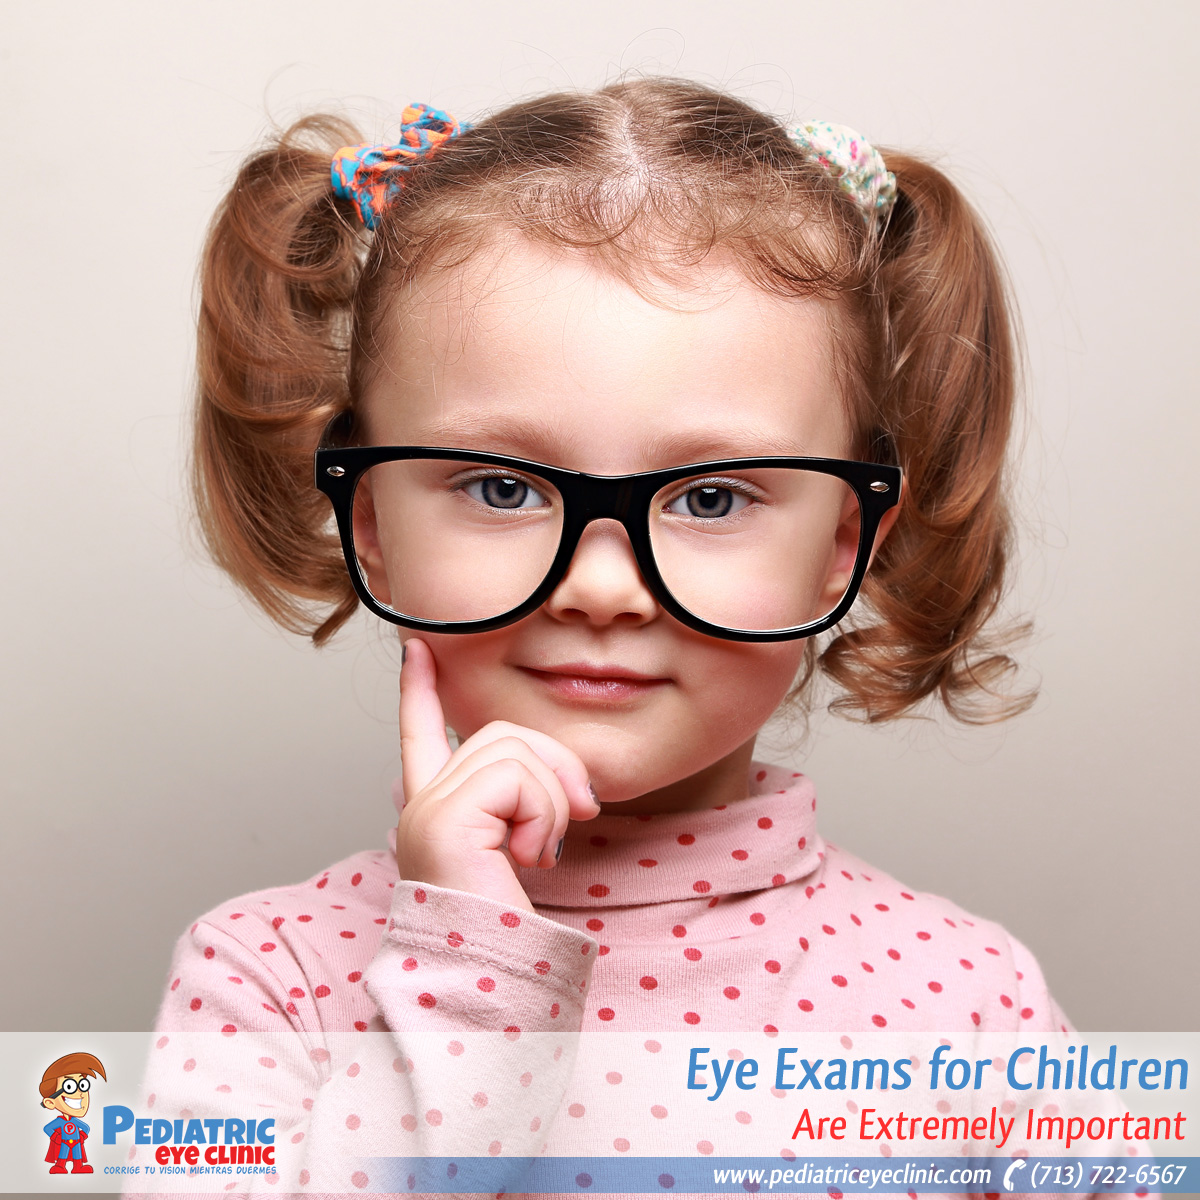 17-eye-exams-for-children